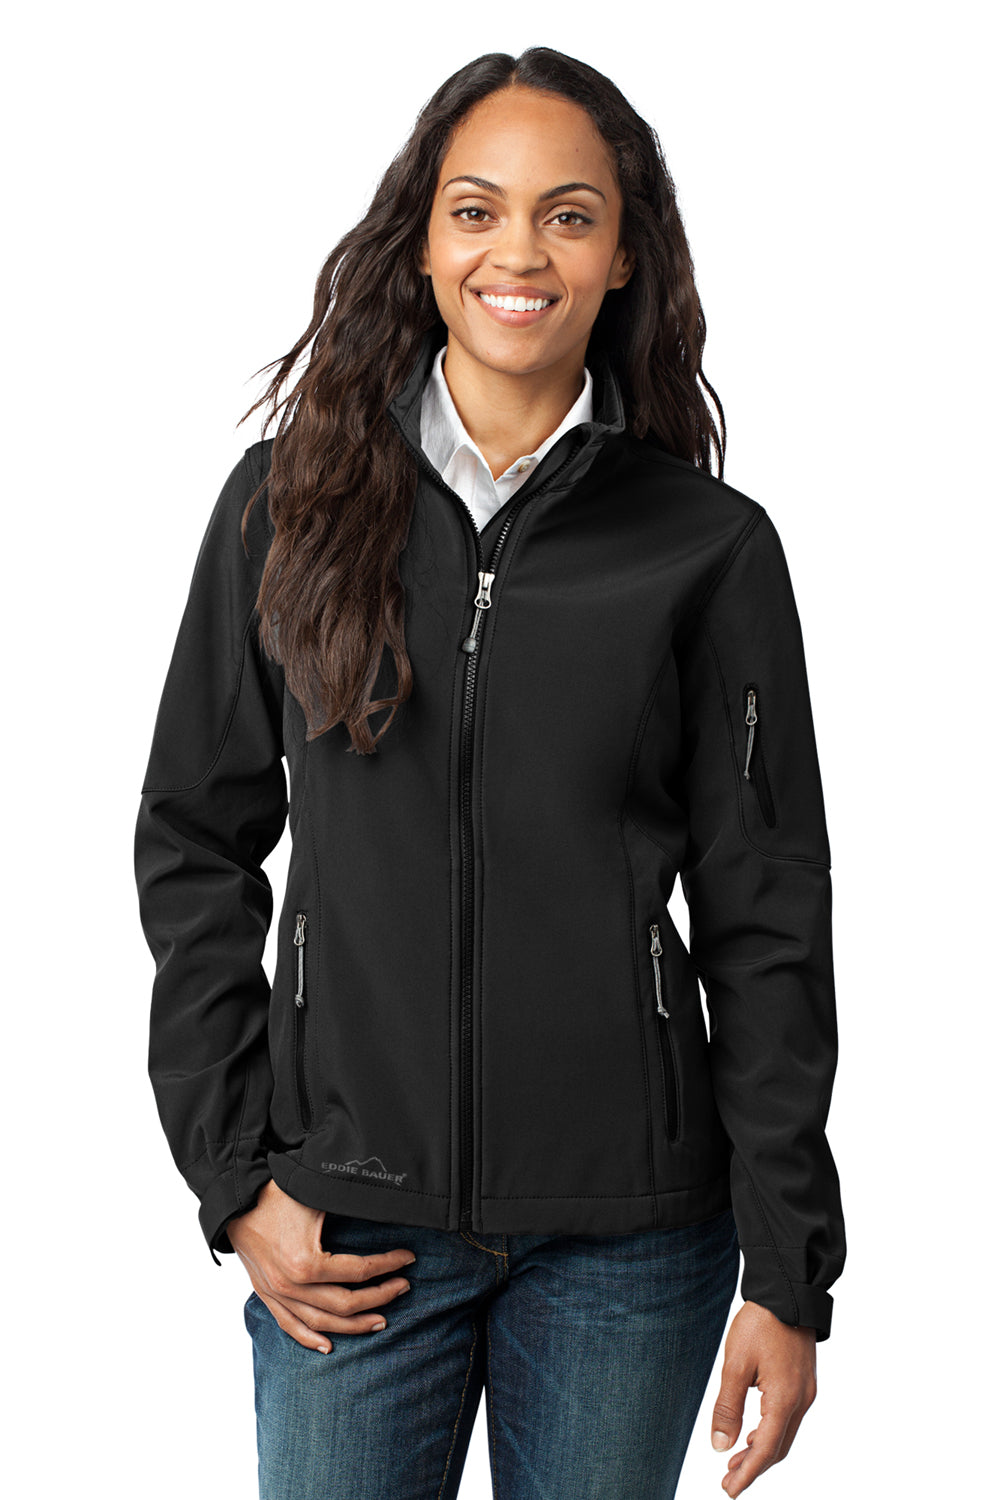 Eddie Bauer EB531 Womens Water Resistant Full Zip Jacket Black Front